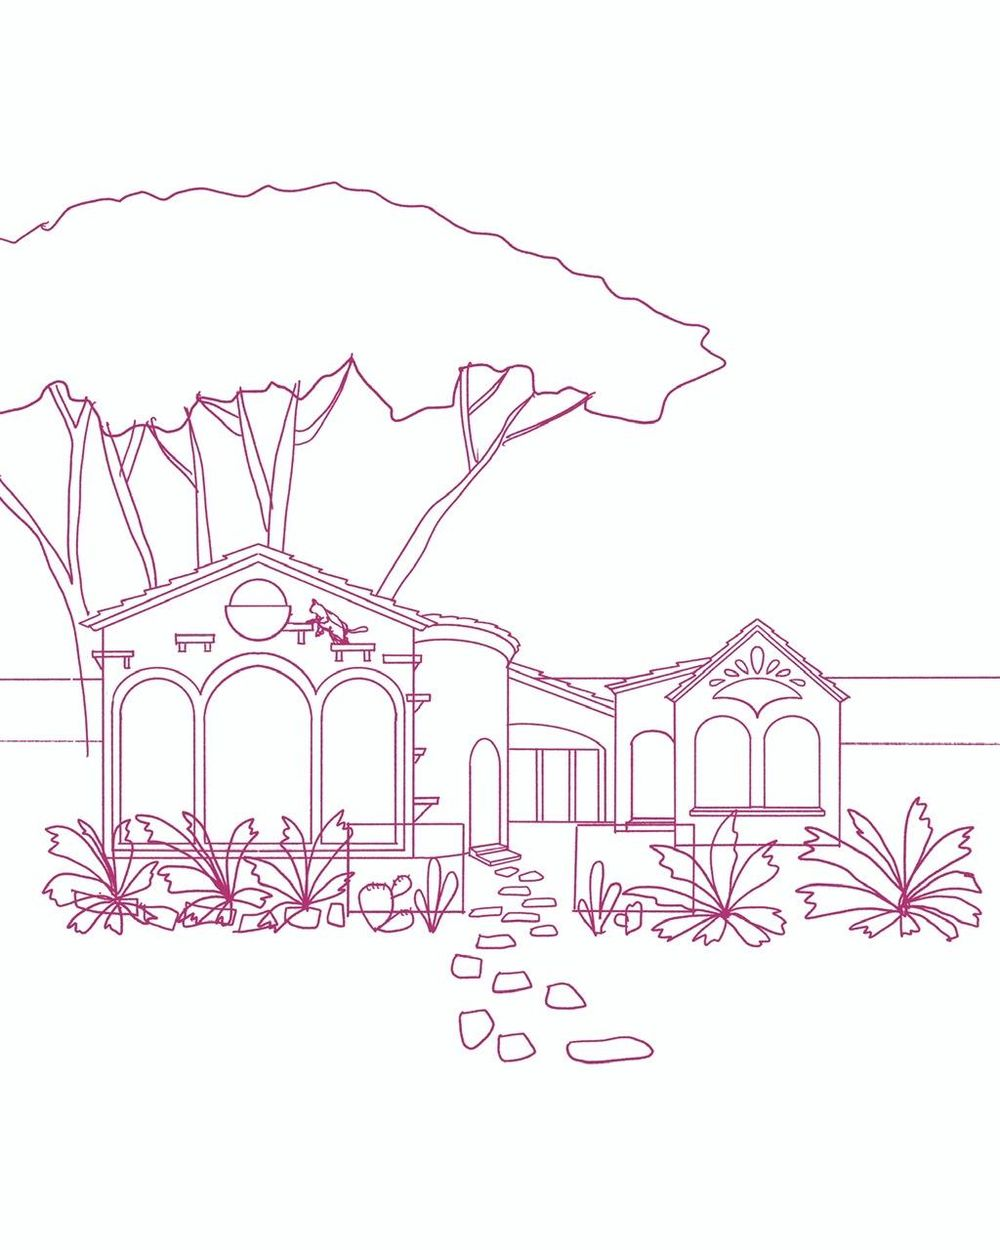 My ideal seaside house with cats - image 1 - student project